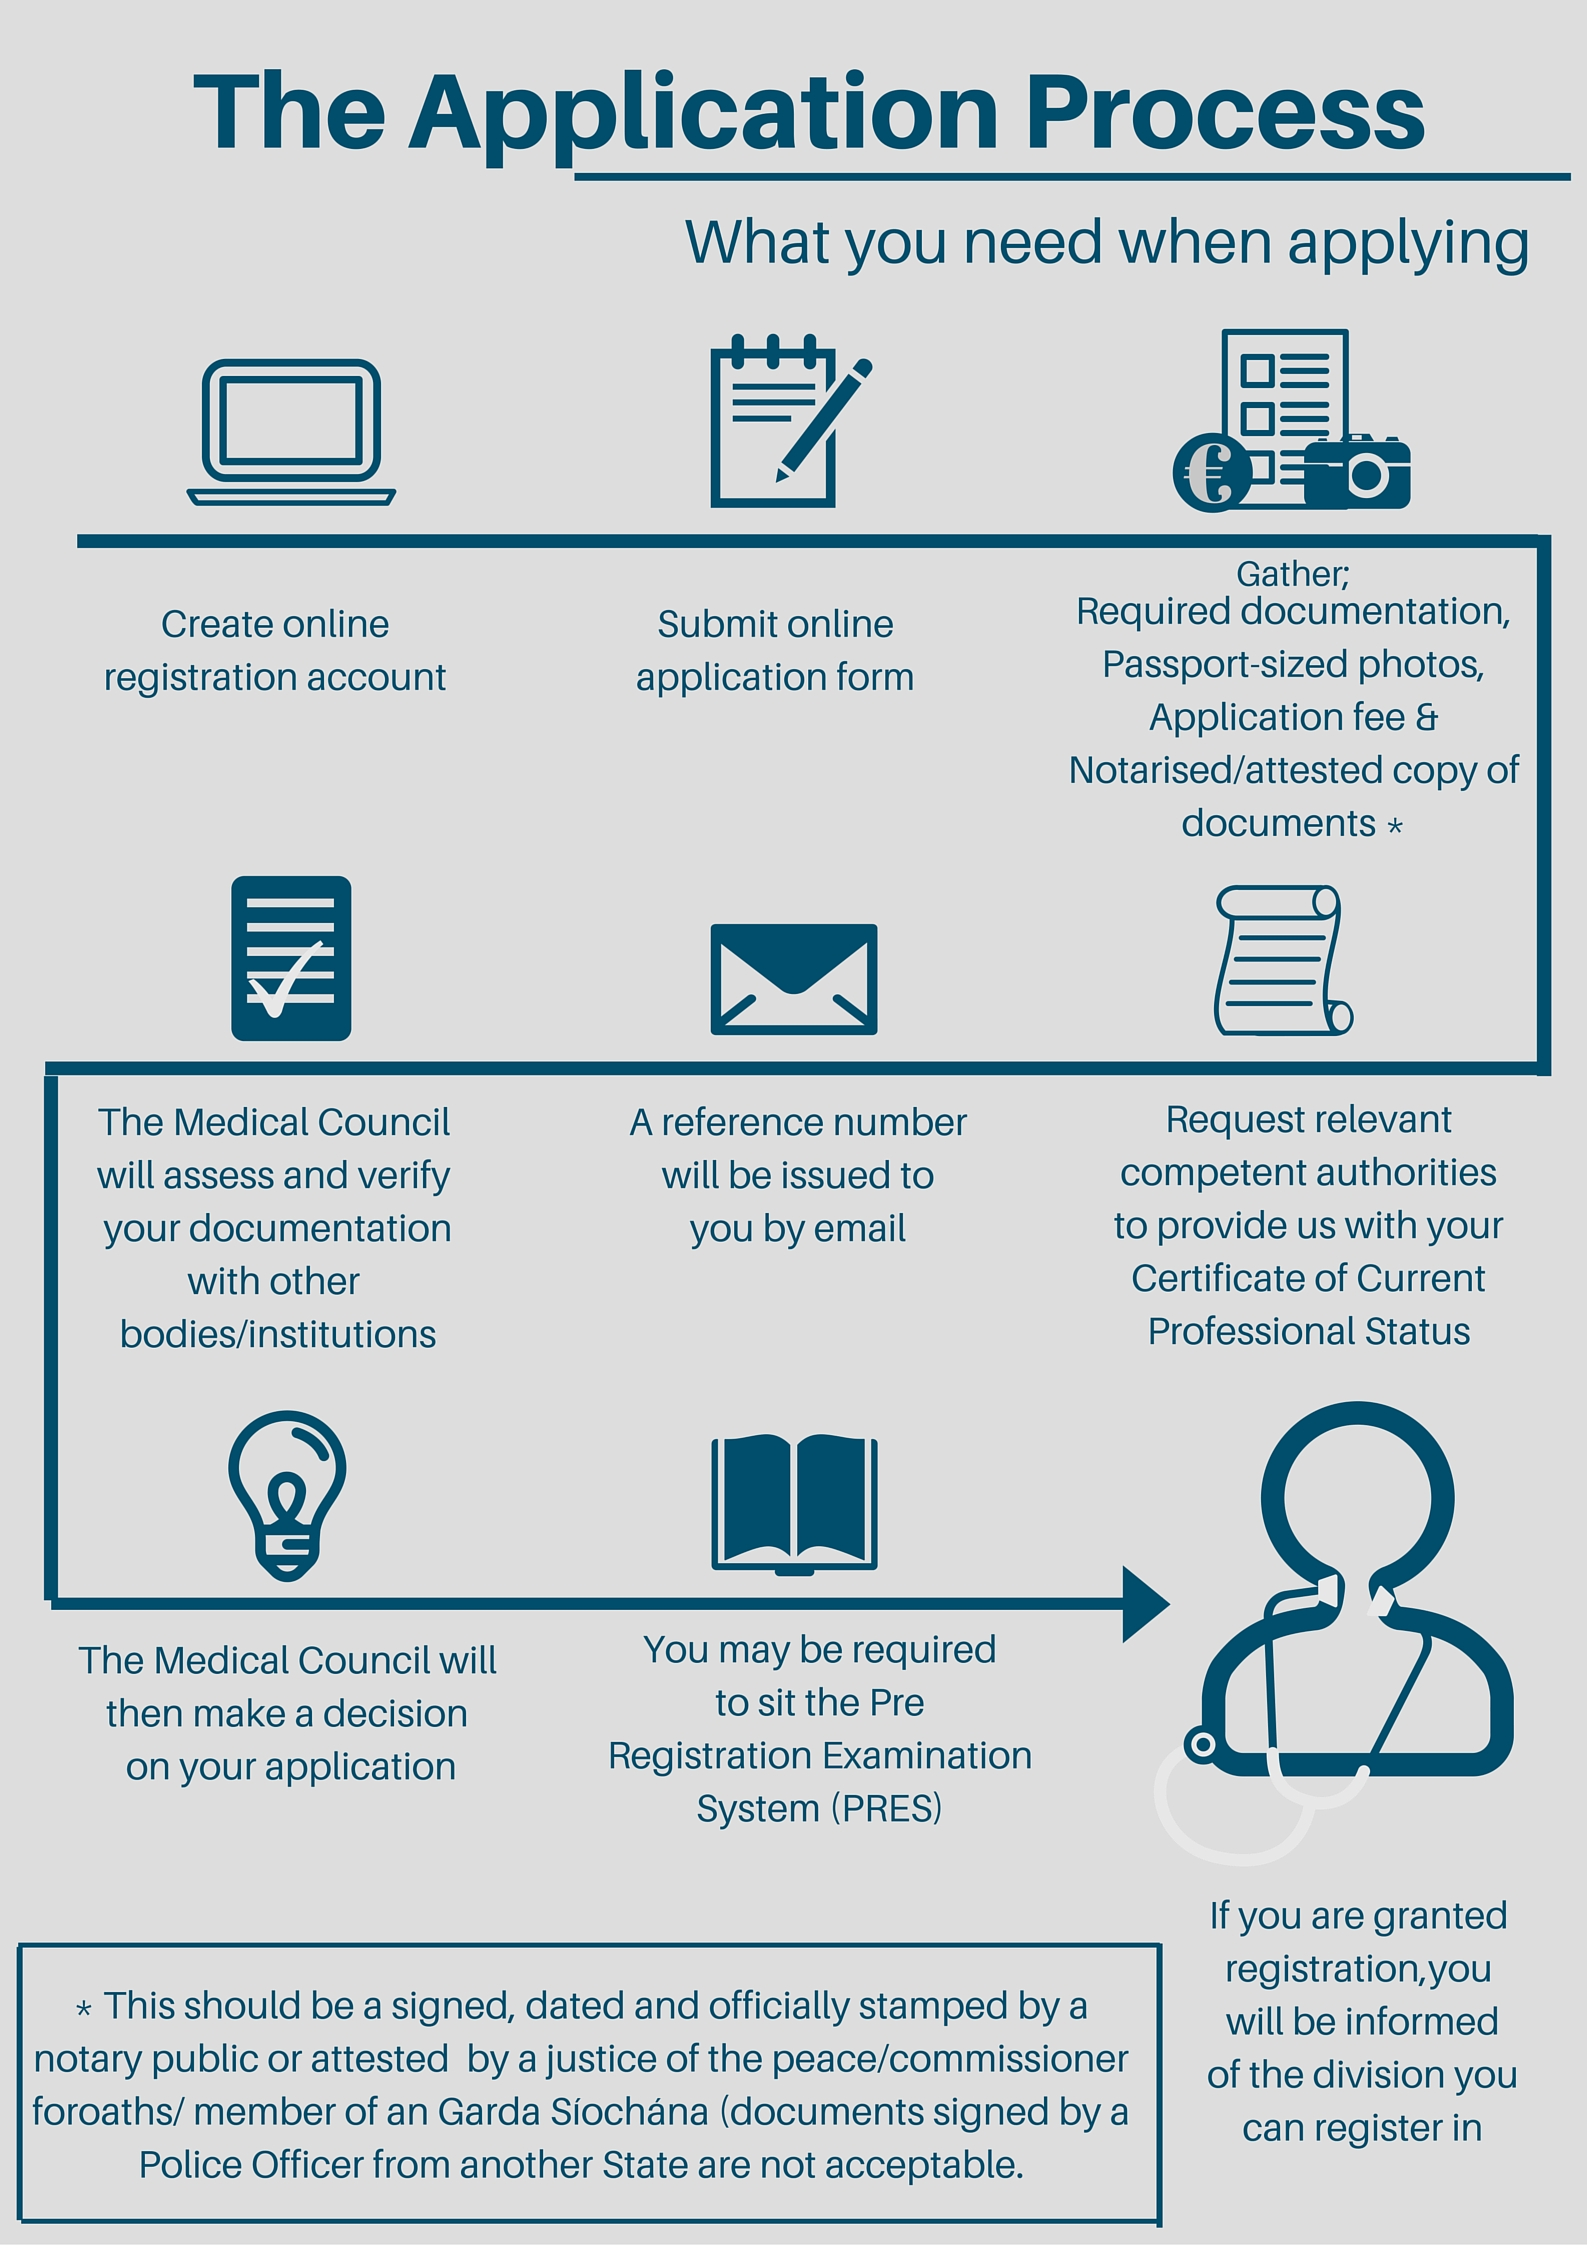 What You Need When Applying For Registration Medical Council What You Need  When Applying For Registration